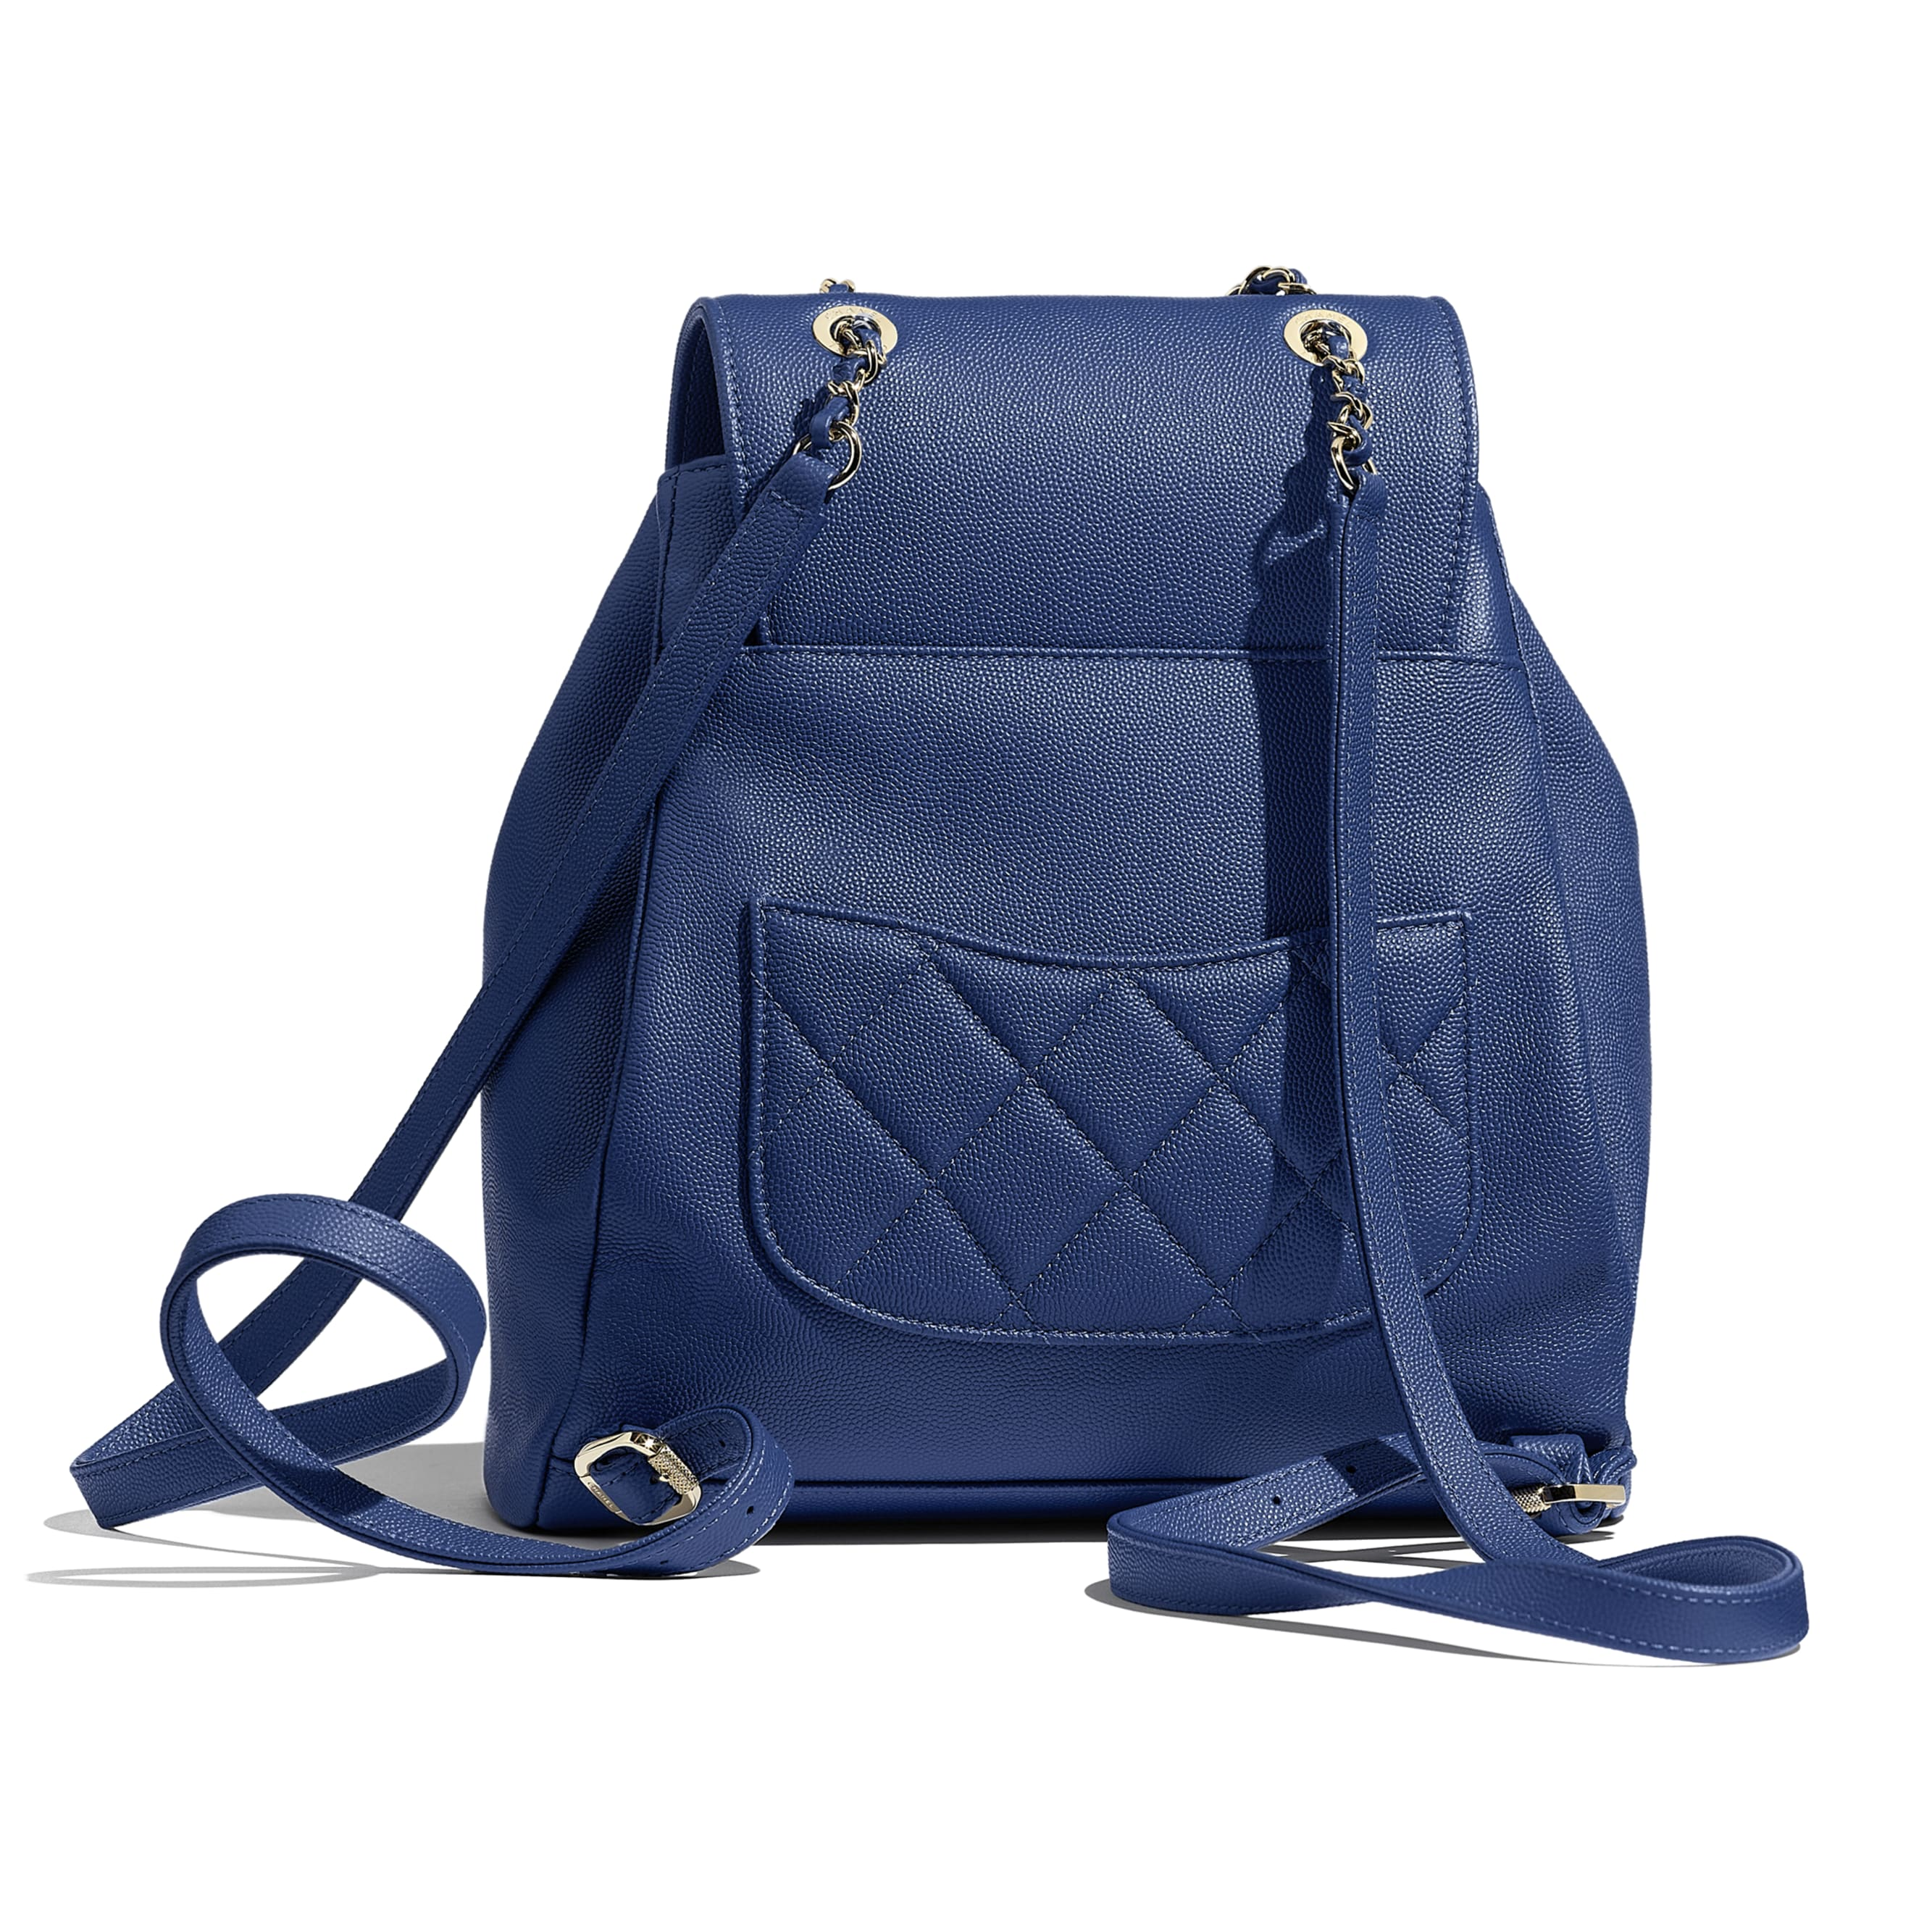 Backpack - Dark Blue - Grained Calfskin & Gold-Tone Metal - Alternative view - see standard sized version